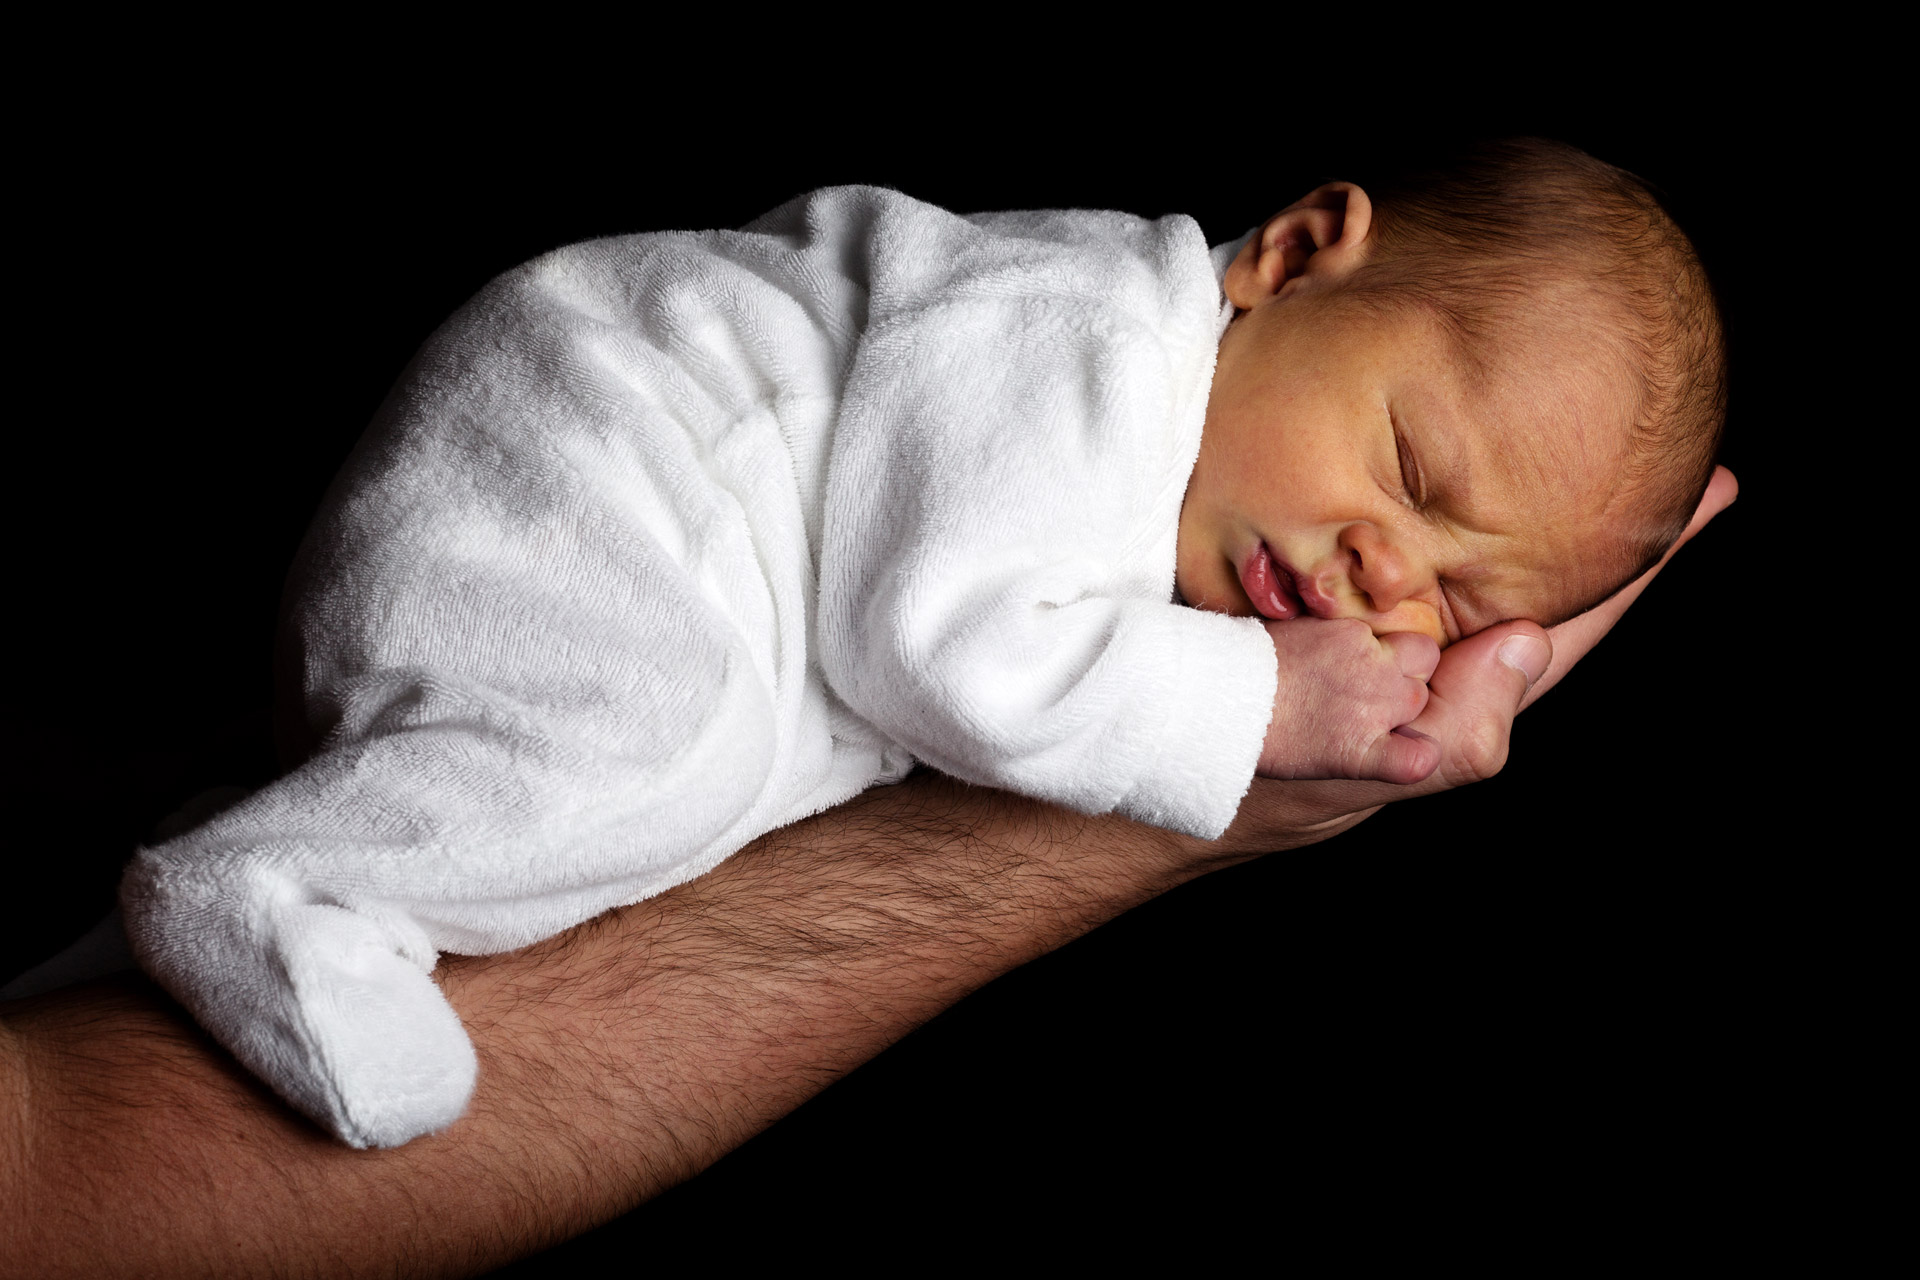 Newborn Baby On An Arm